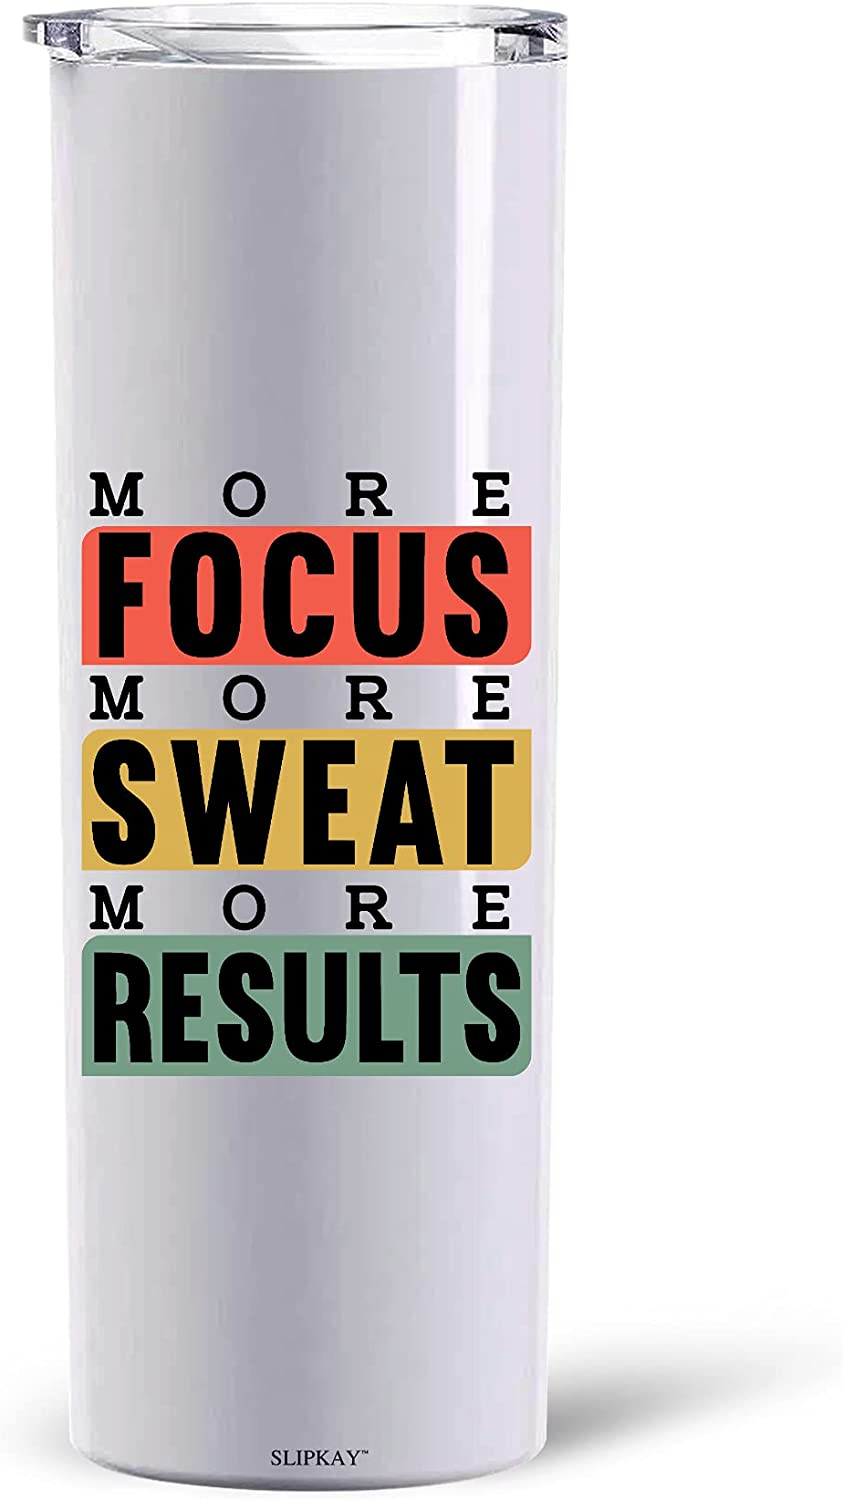 More Focus Sweat Results Tumbler SS 20oz Brand Ranking TOP1 new